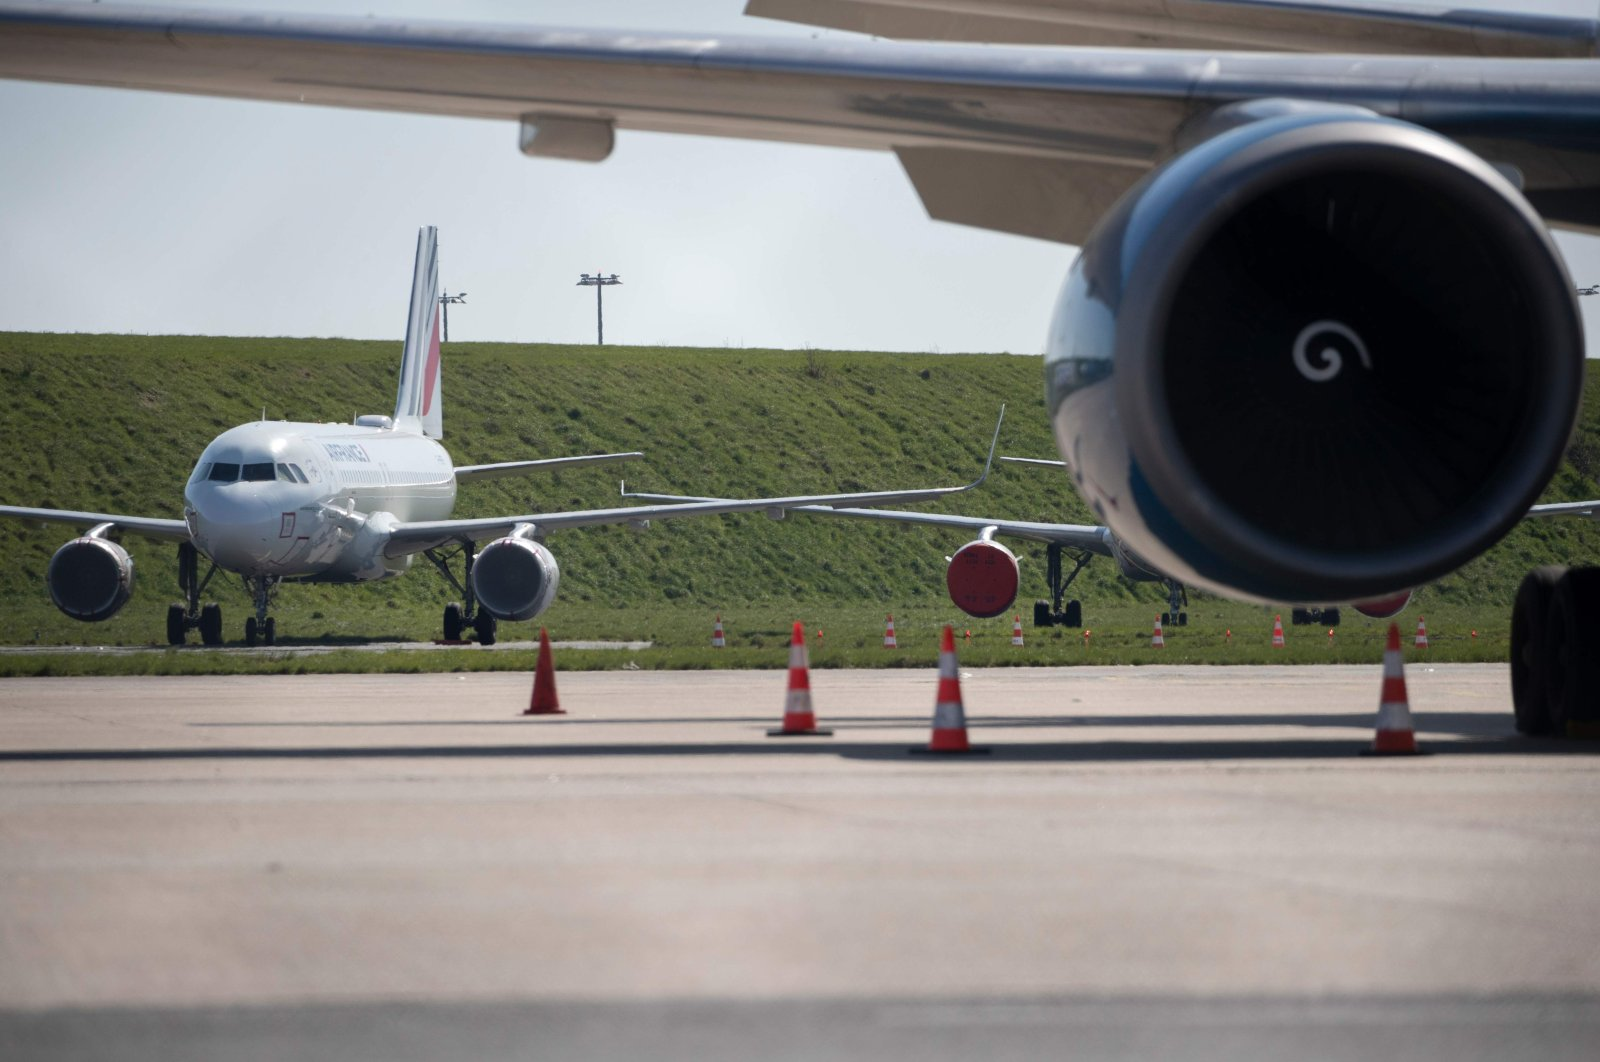 A picture shows grounded airplanes at the Roissy-Charles de Gaulle airport in Roissy-en-France, north of Paris, on the eight day of a lockdown aimed at curbing the spread of the COVID-19 in France, Tuesday, March 24, 2020. (AFP Photo)